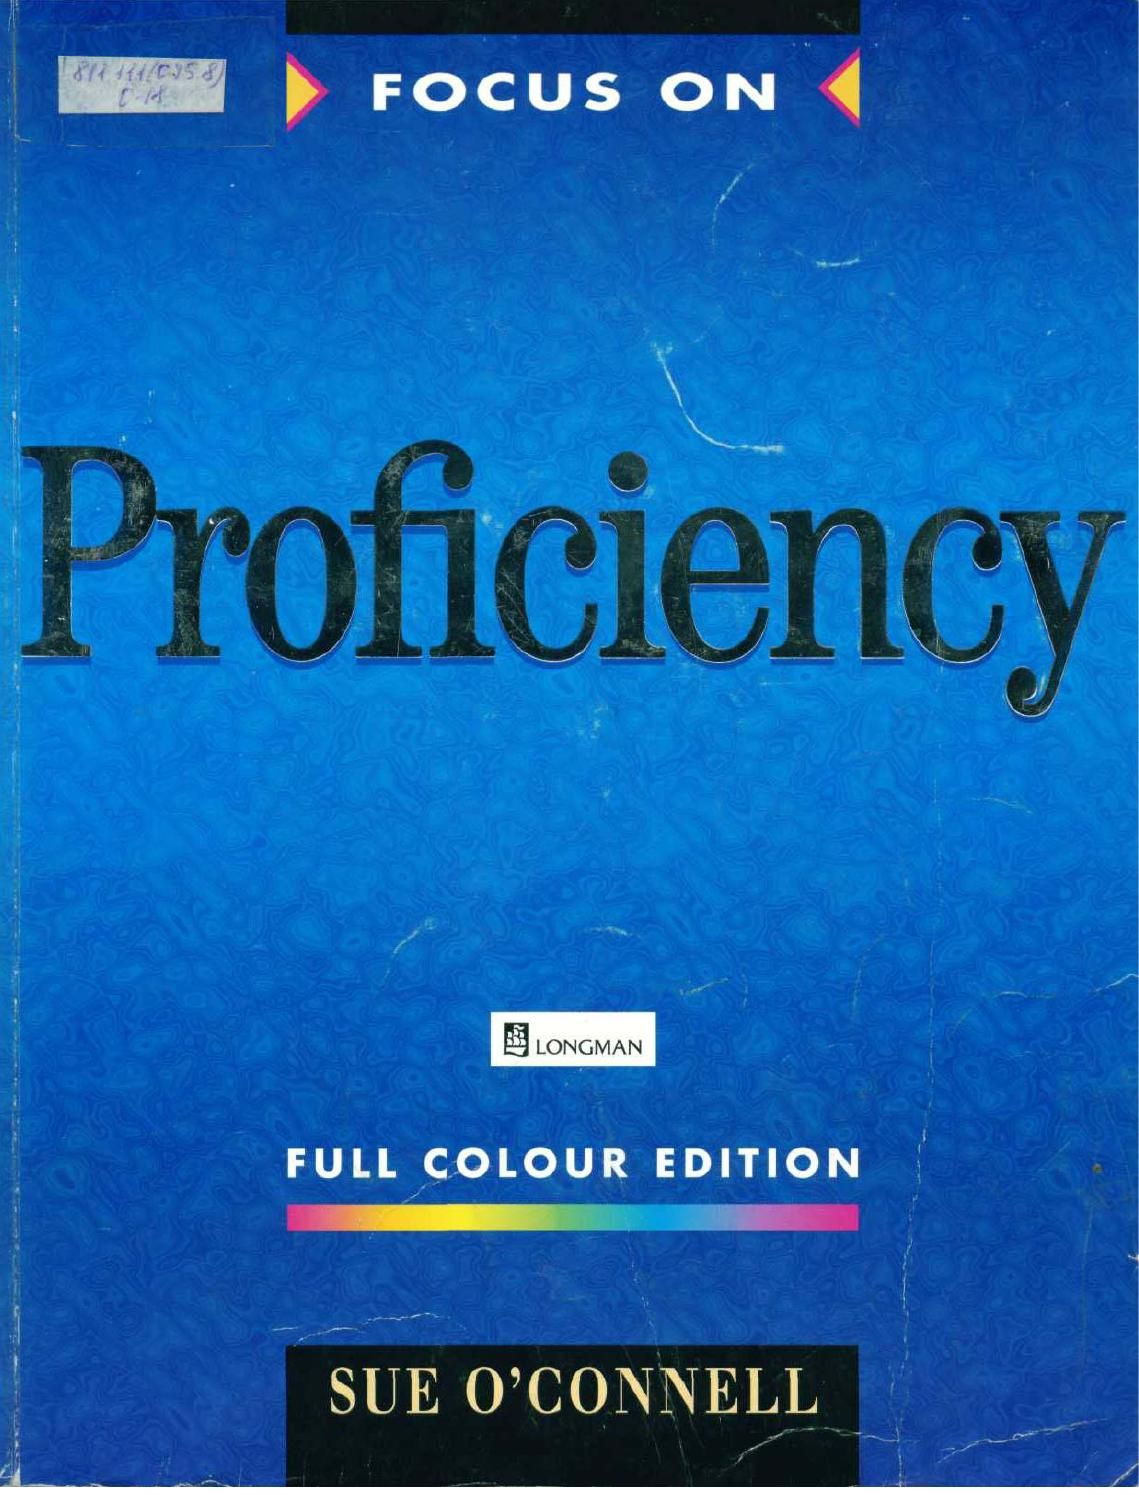 0145849 64535  proficiency by Fabiola Valdez - issuu